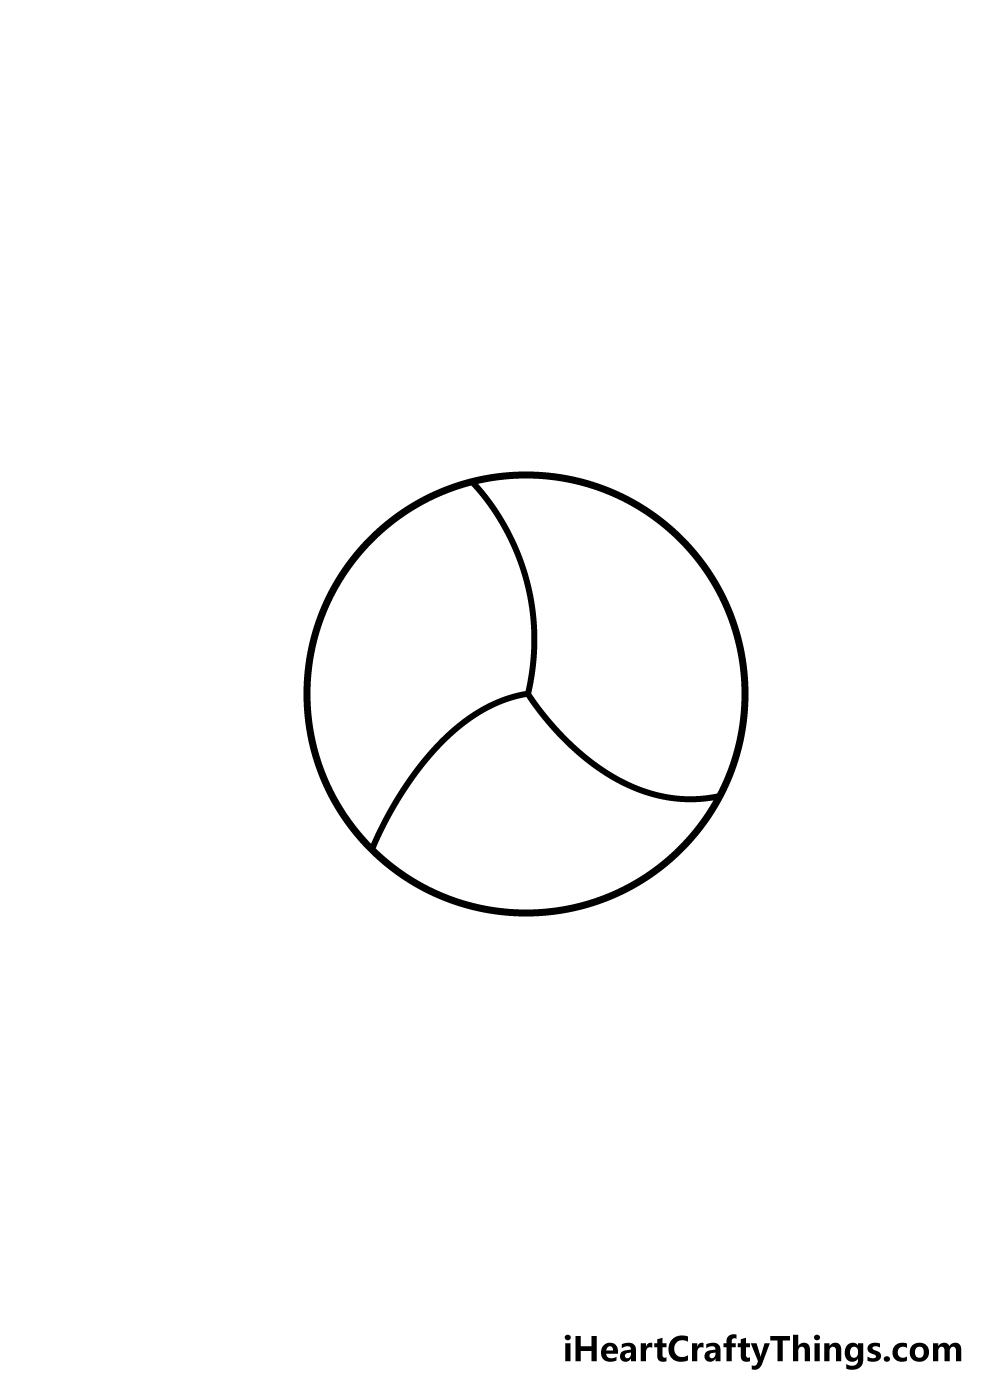 volleyball drawing step 3